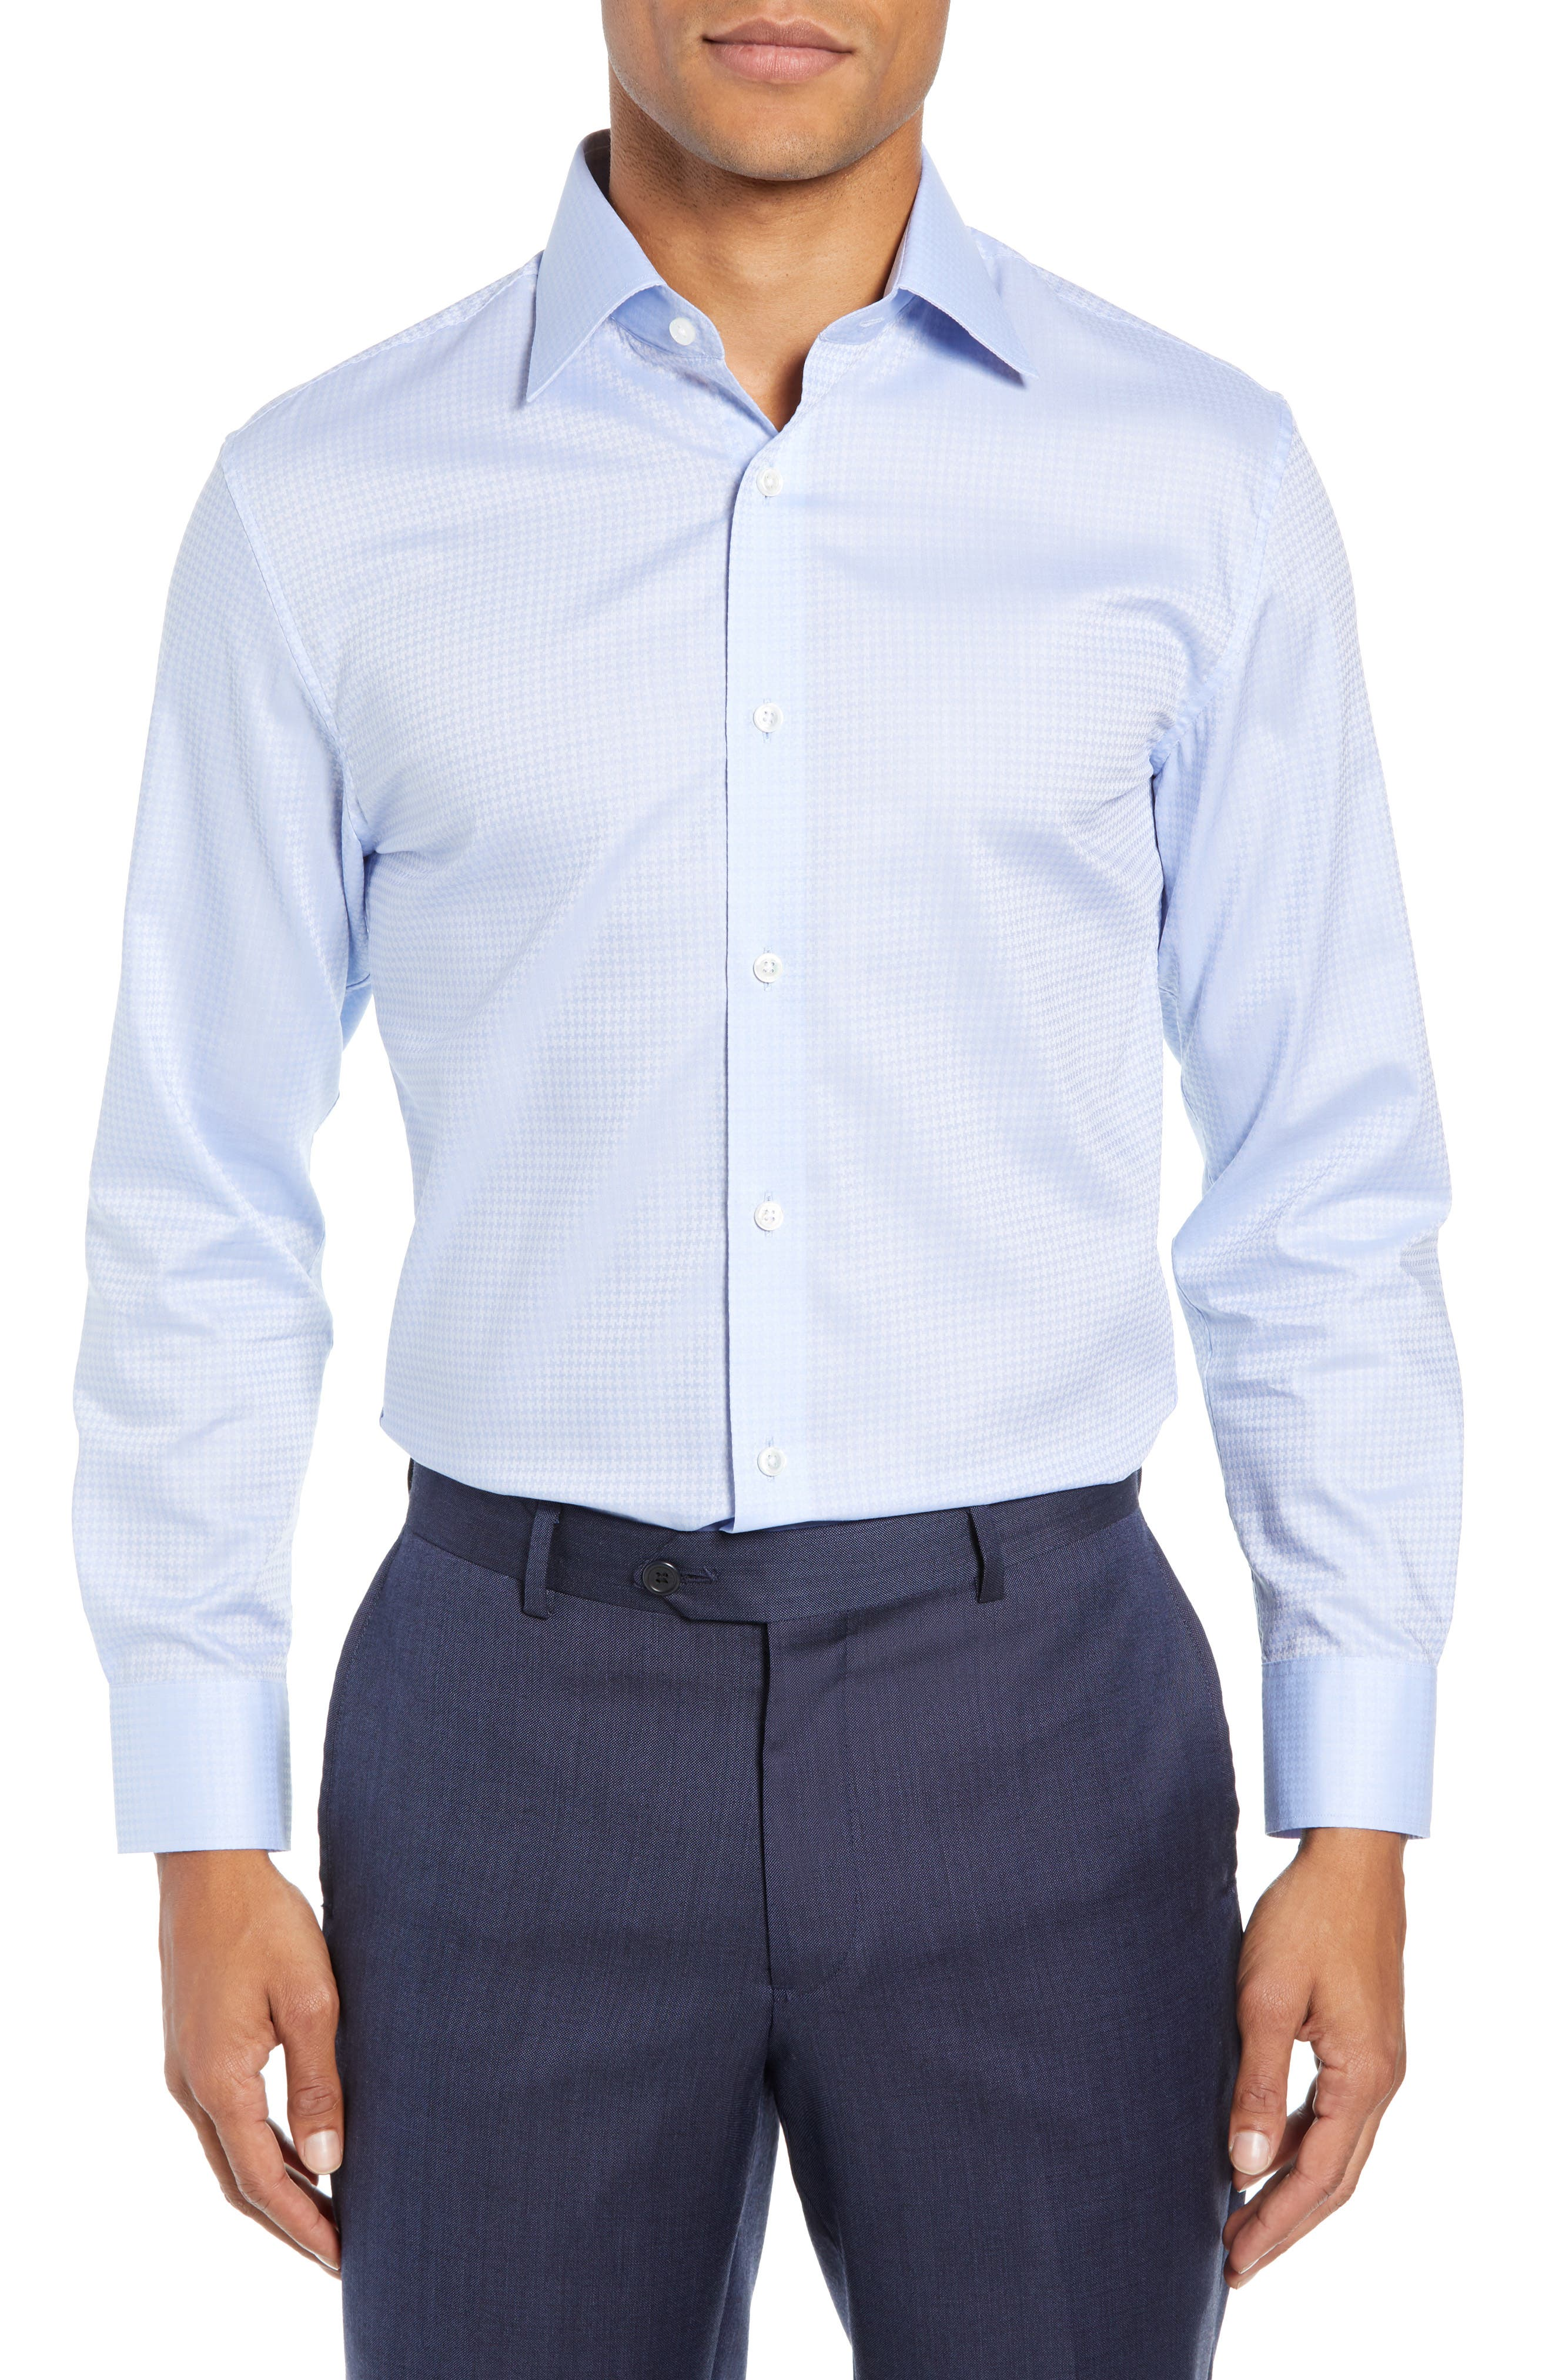 Swiss Performance Clifton Slim Fit Houndstooth Dress Shirt,                             Main thumbnail 1, color,                             CANNES BLUE